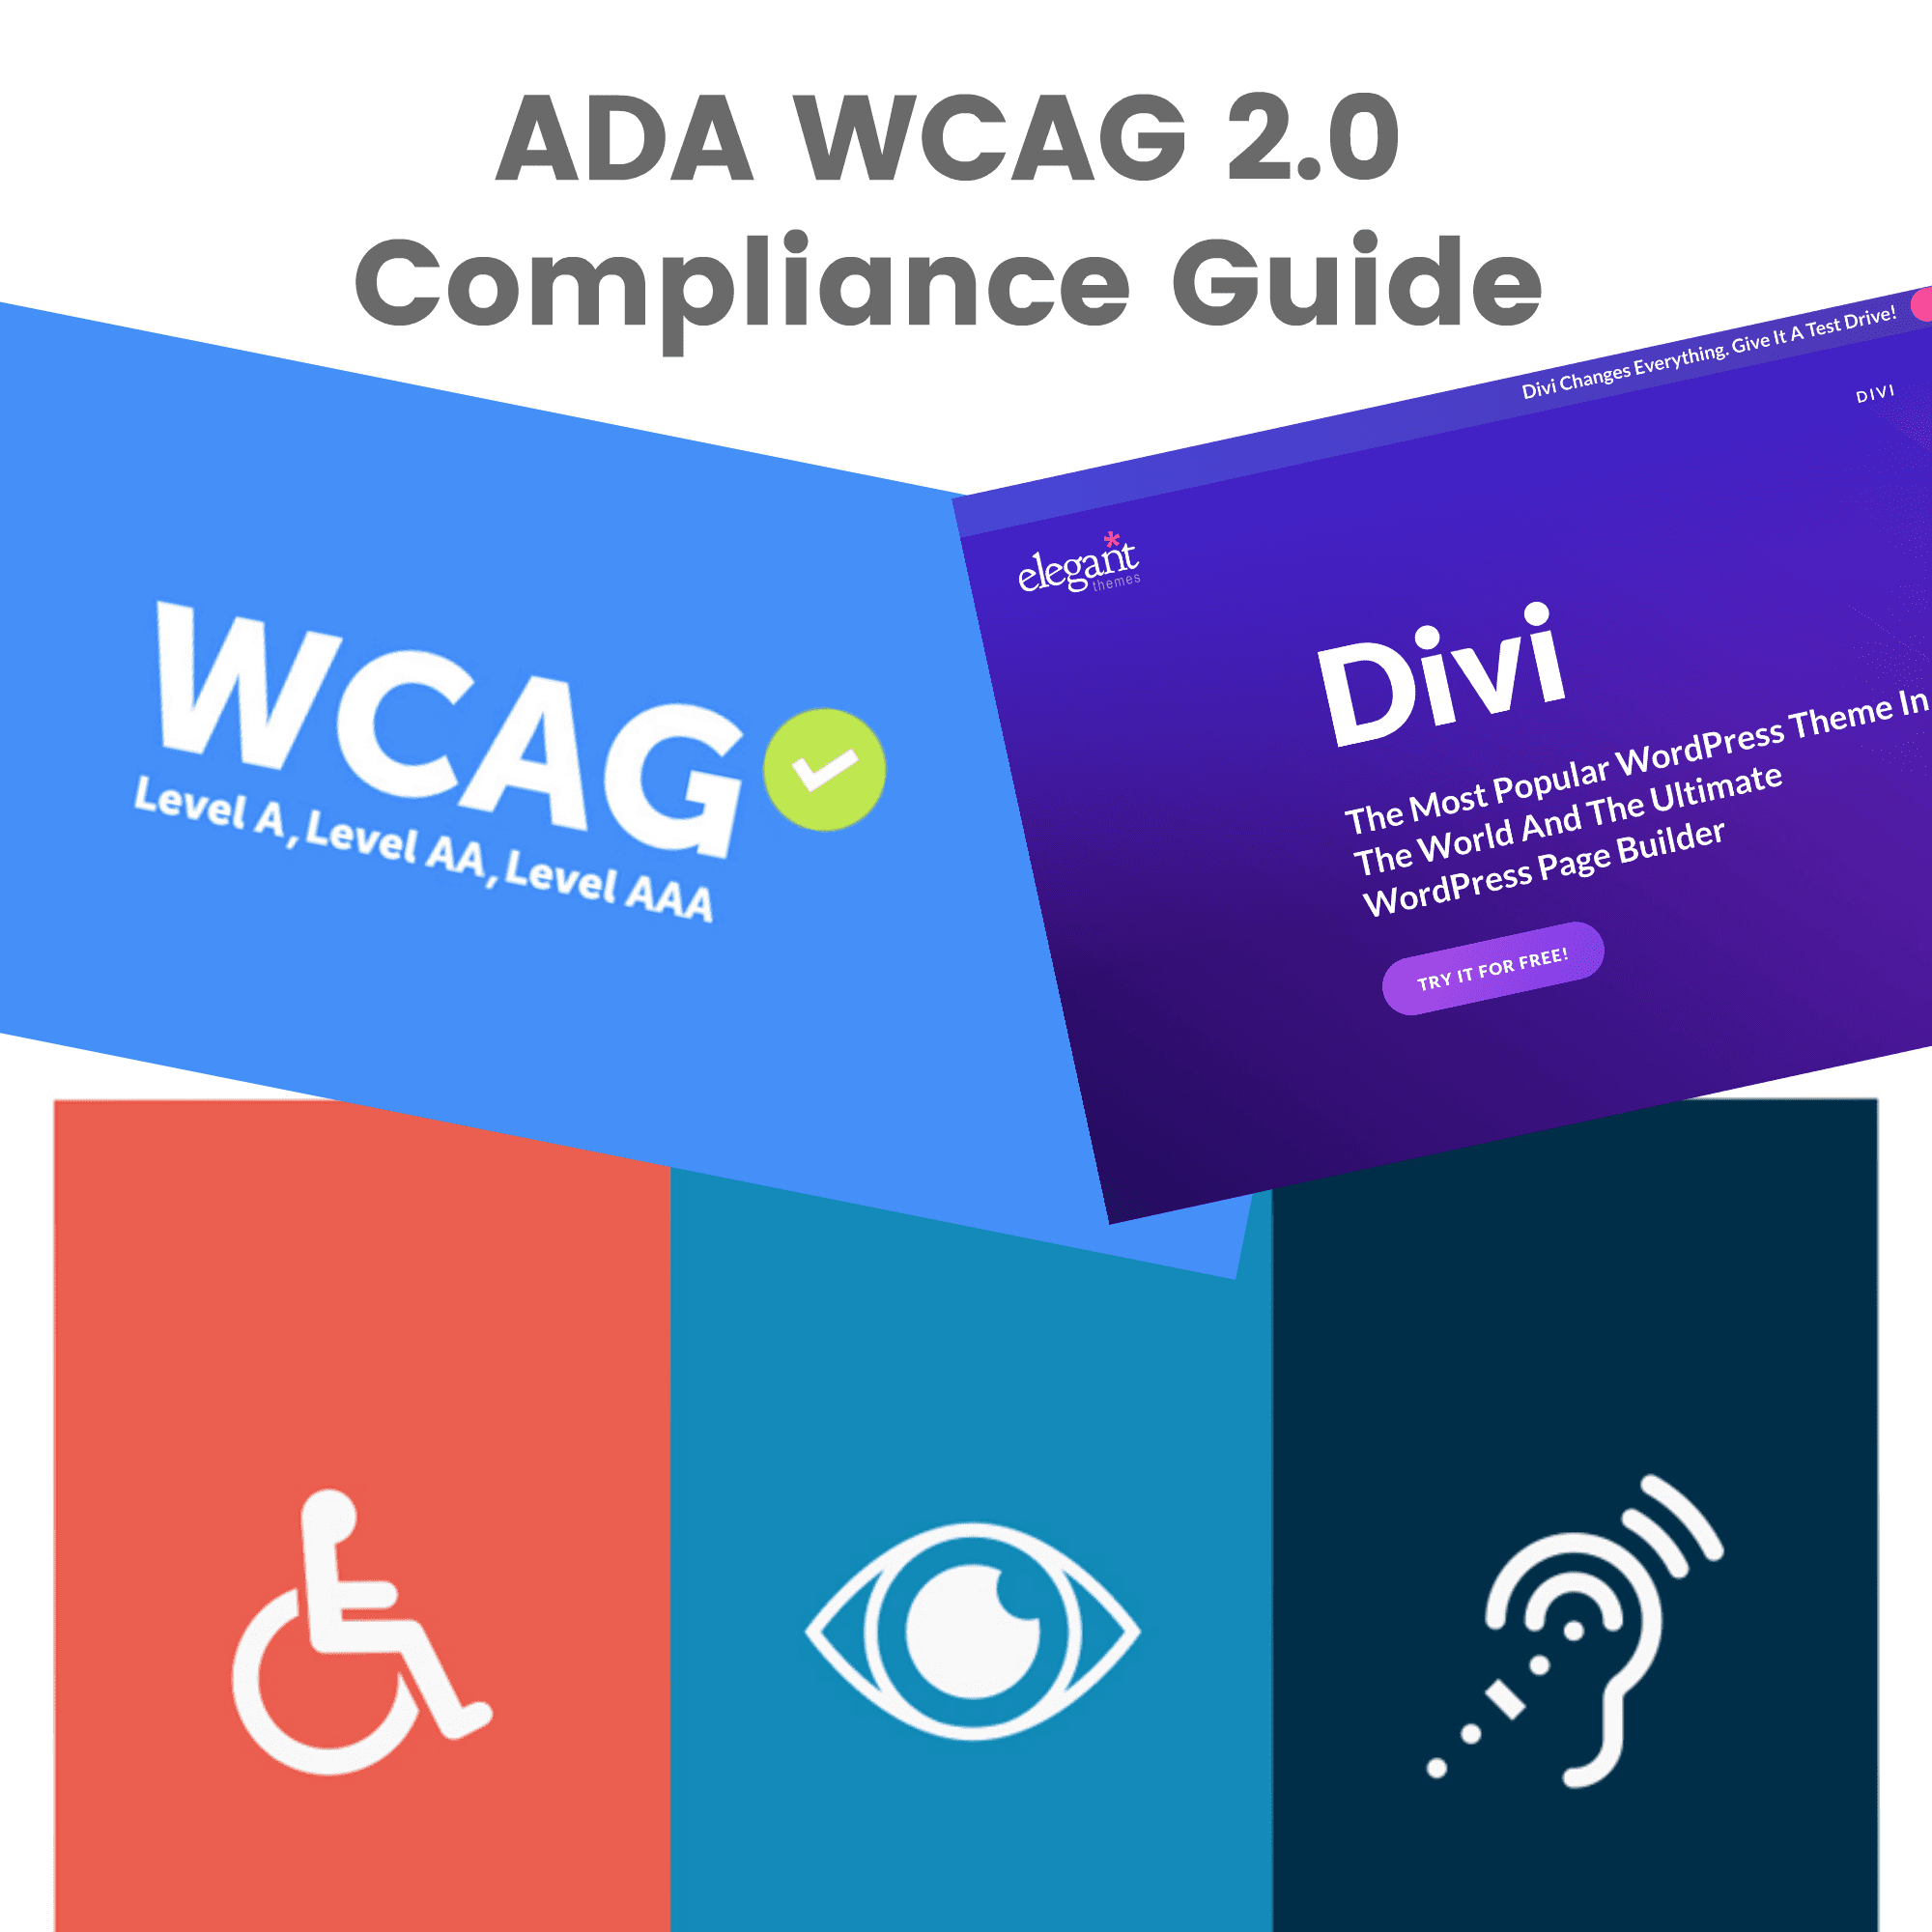 ada wcag compliance guide graphic